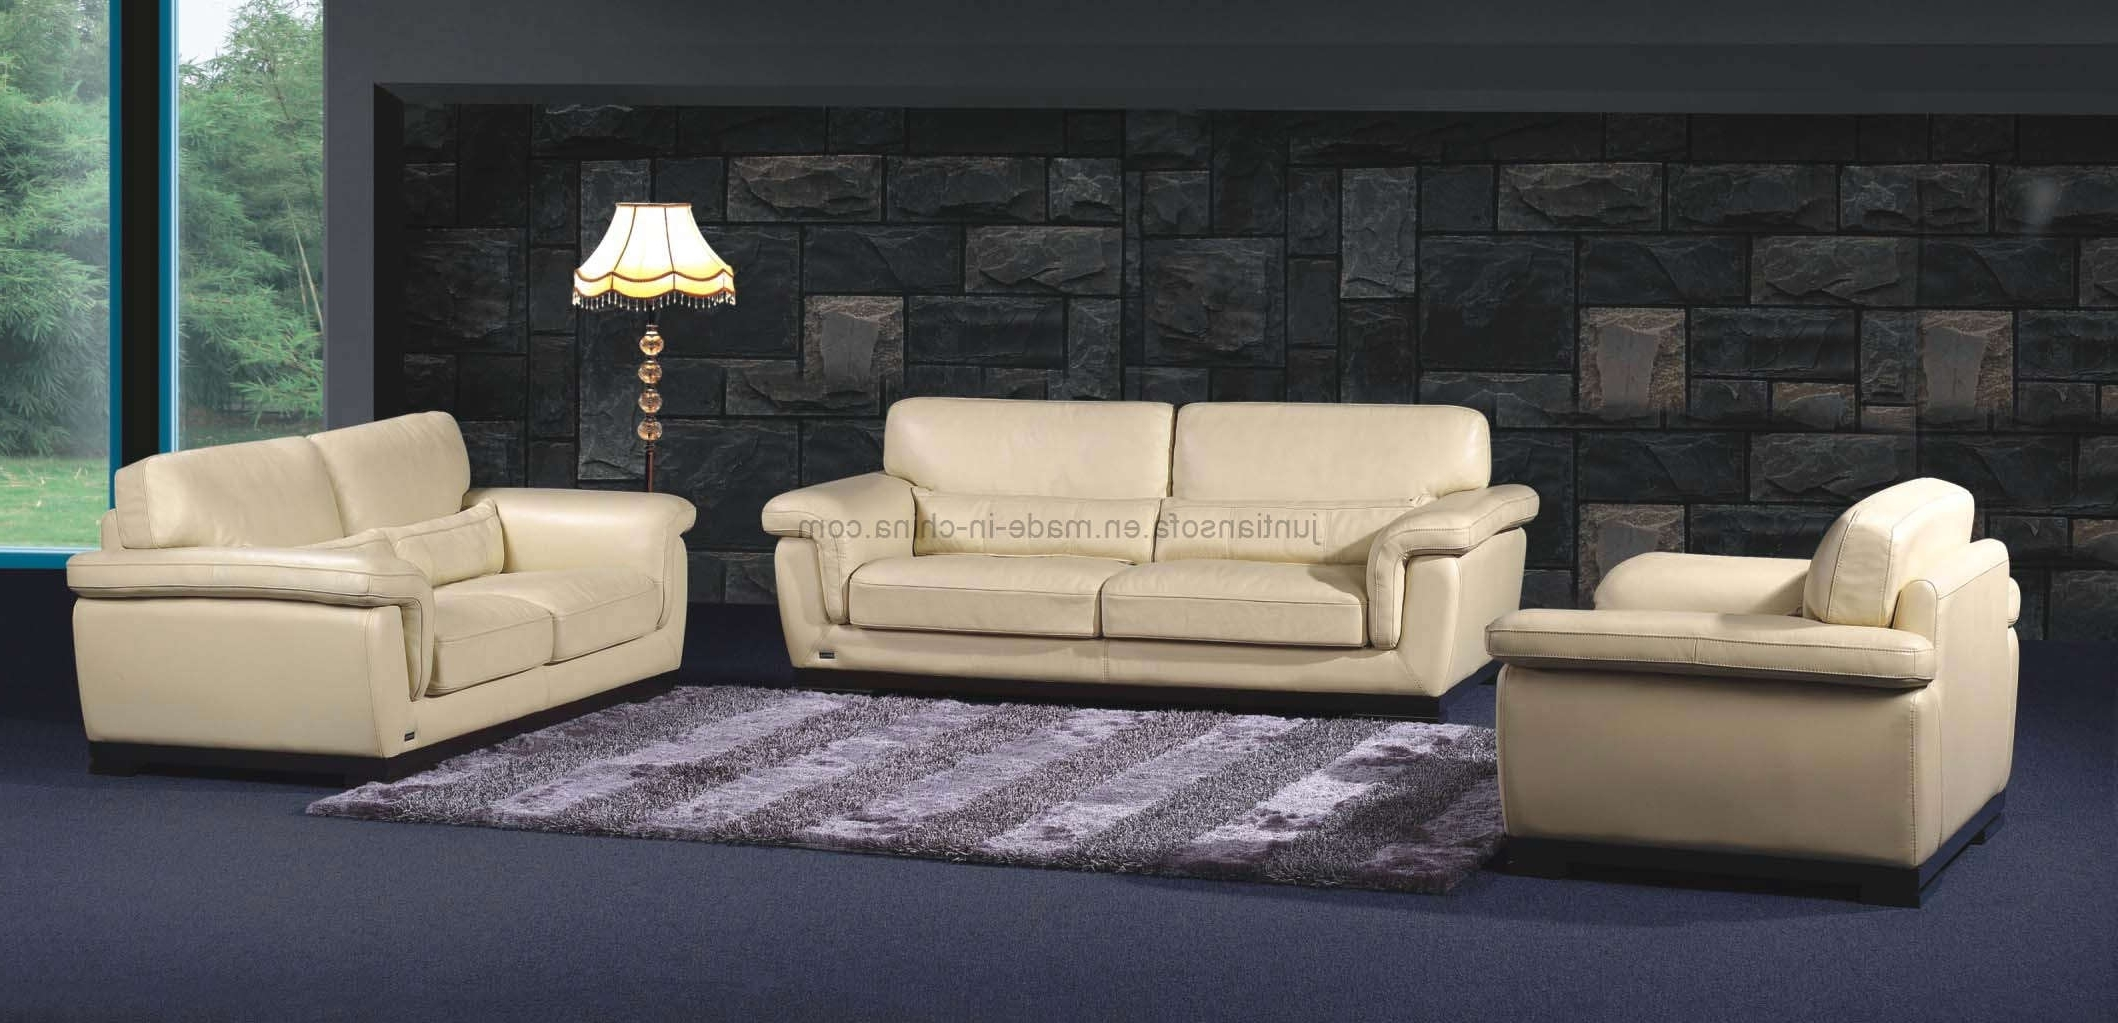 Recent Quality Sectional Sofas For Lovely High Quality Sectional Sofa 30 For Sofa Room Ideas With (View 16 of 20)